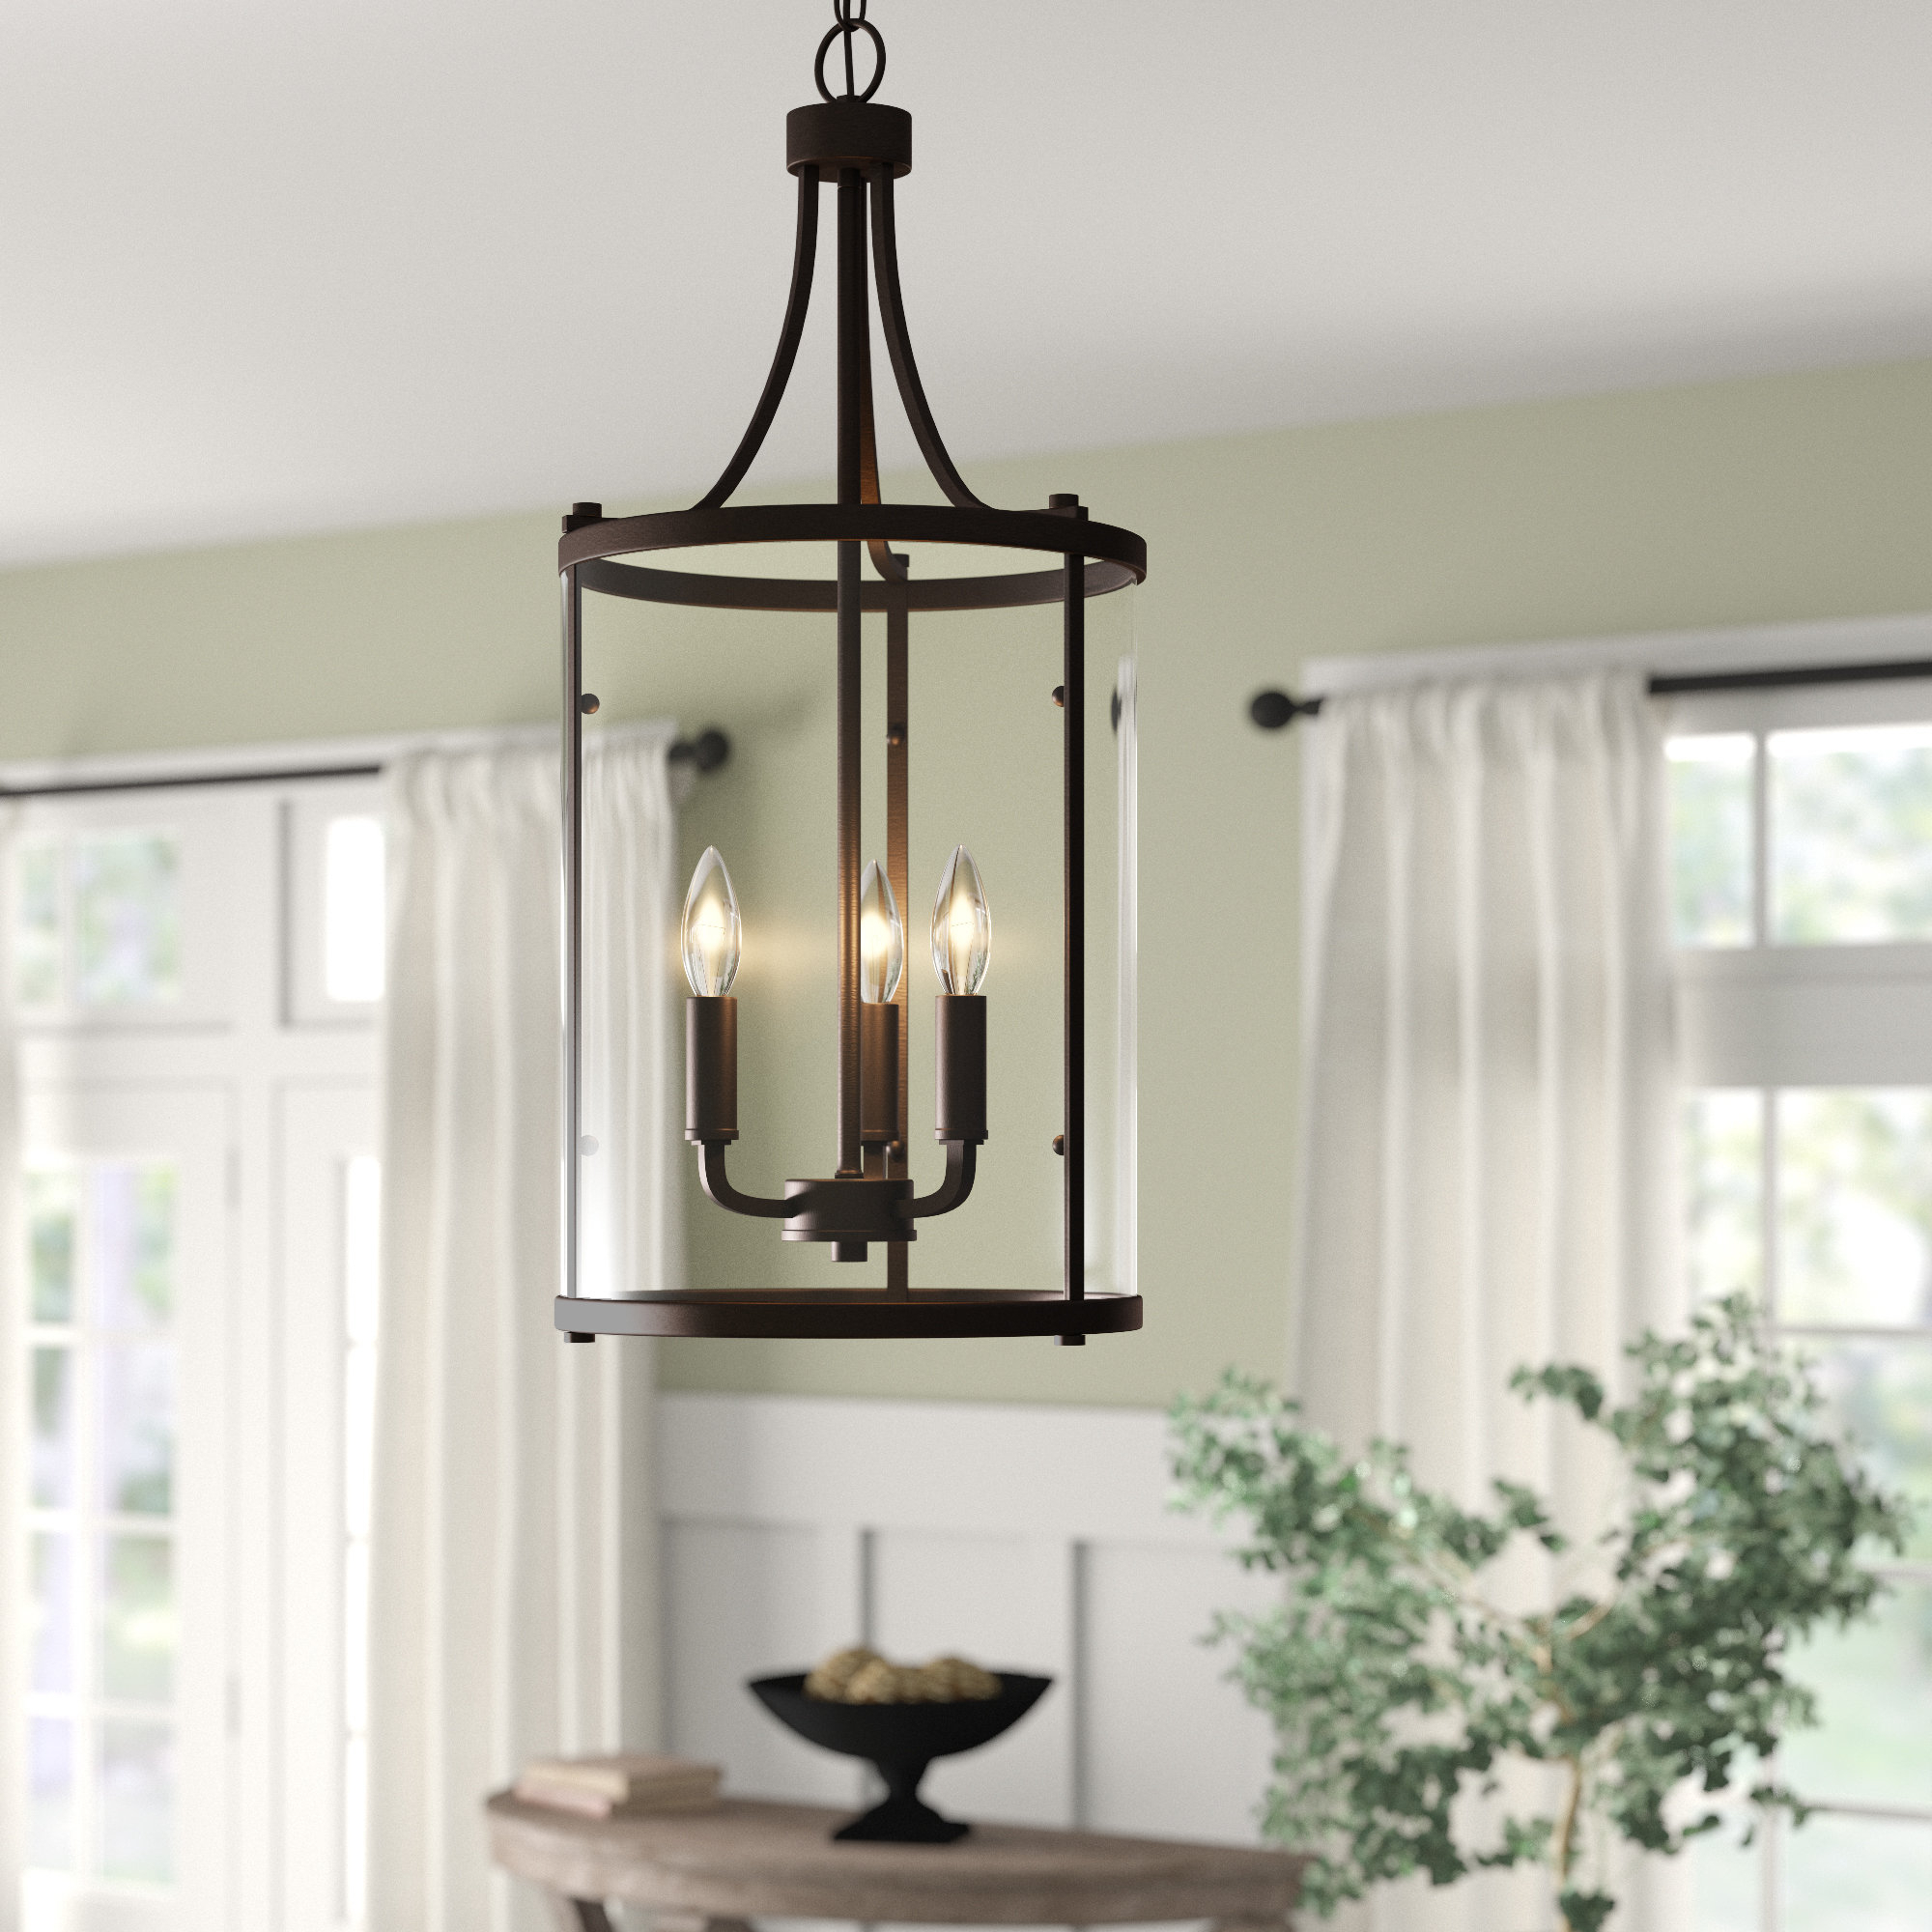 3 Light Lantern Cylinder Pendant Throughout Best And Newest Tessie 3 Light Lantern Cylinder Pendants (View 2 of 20)